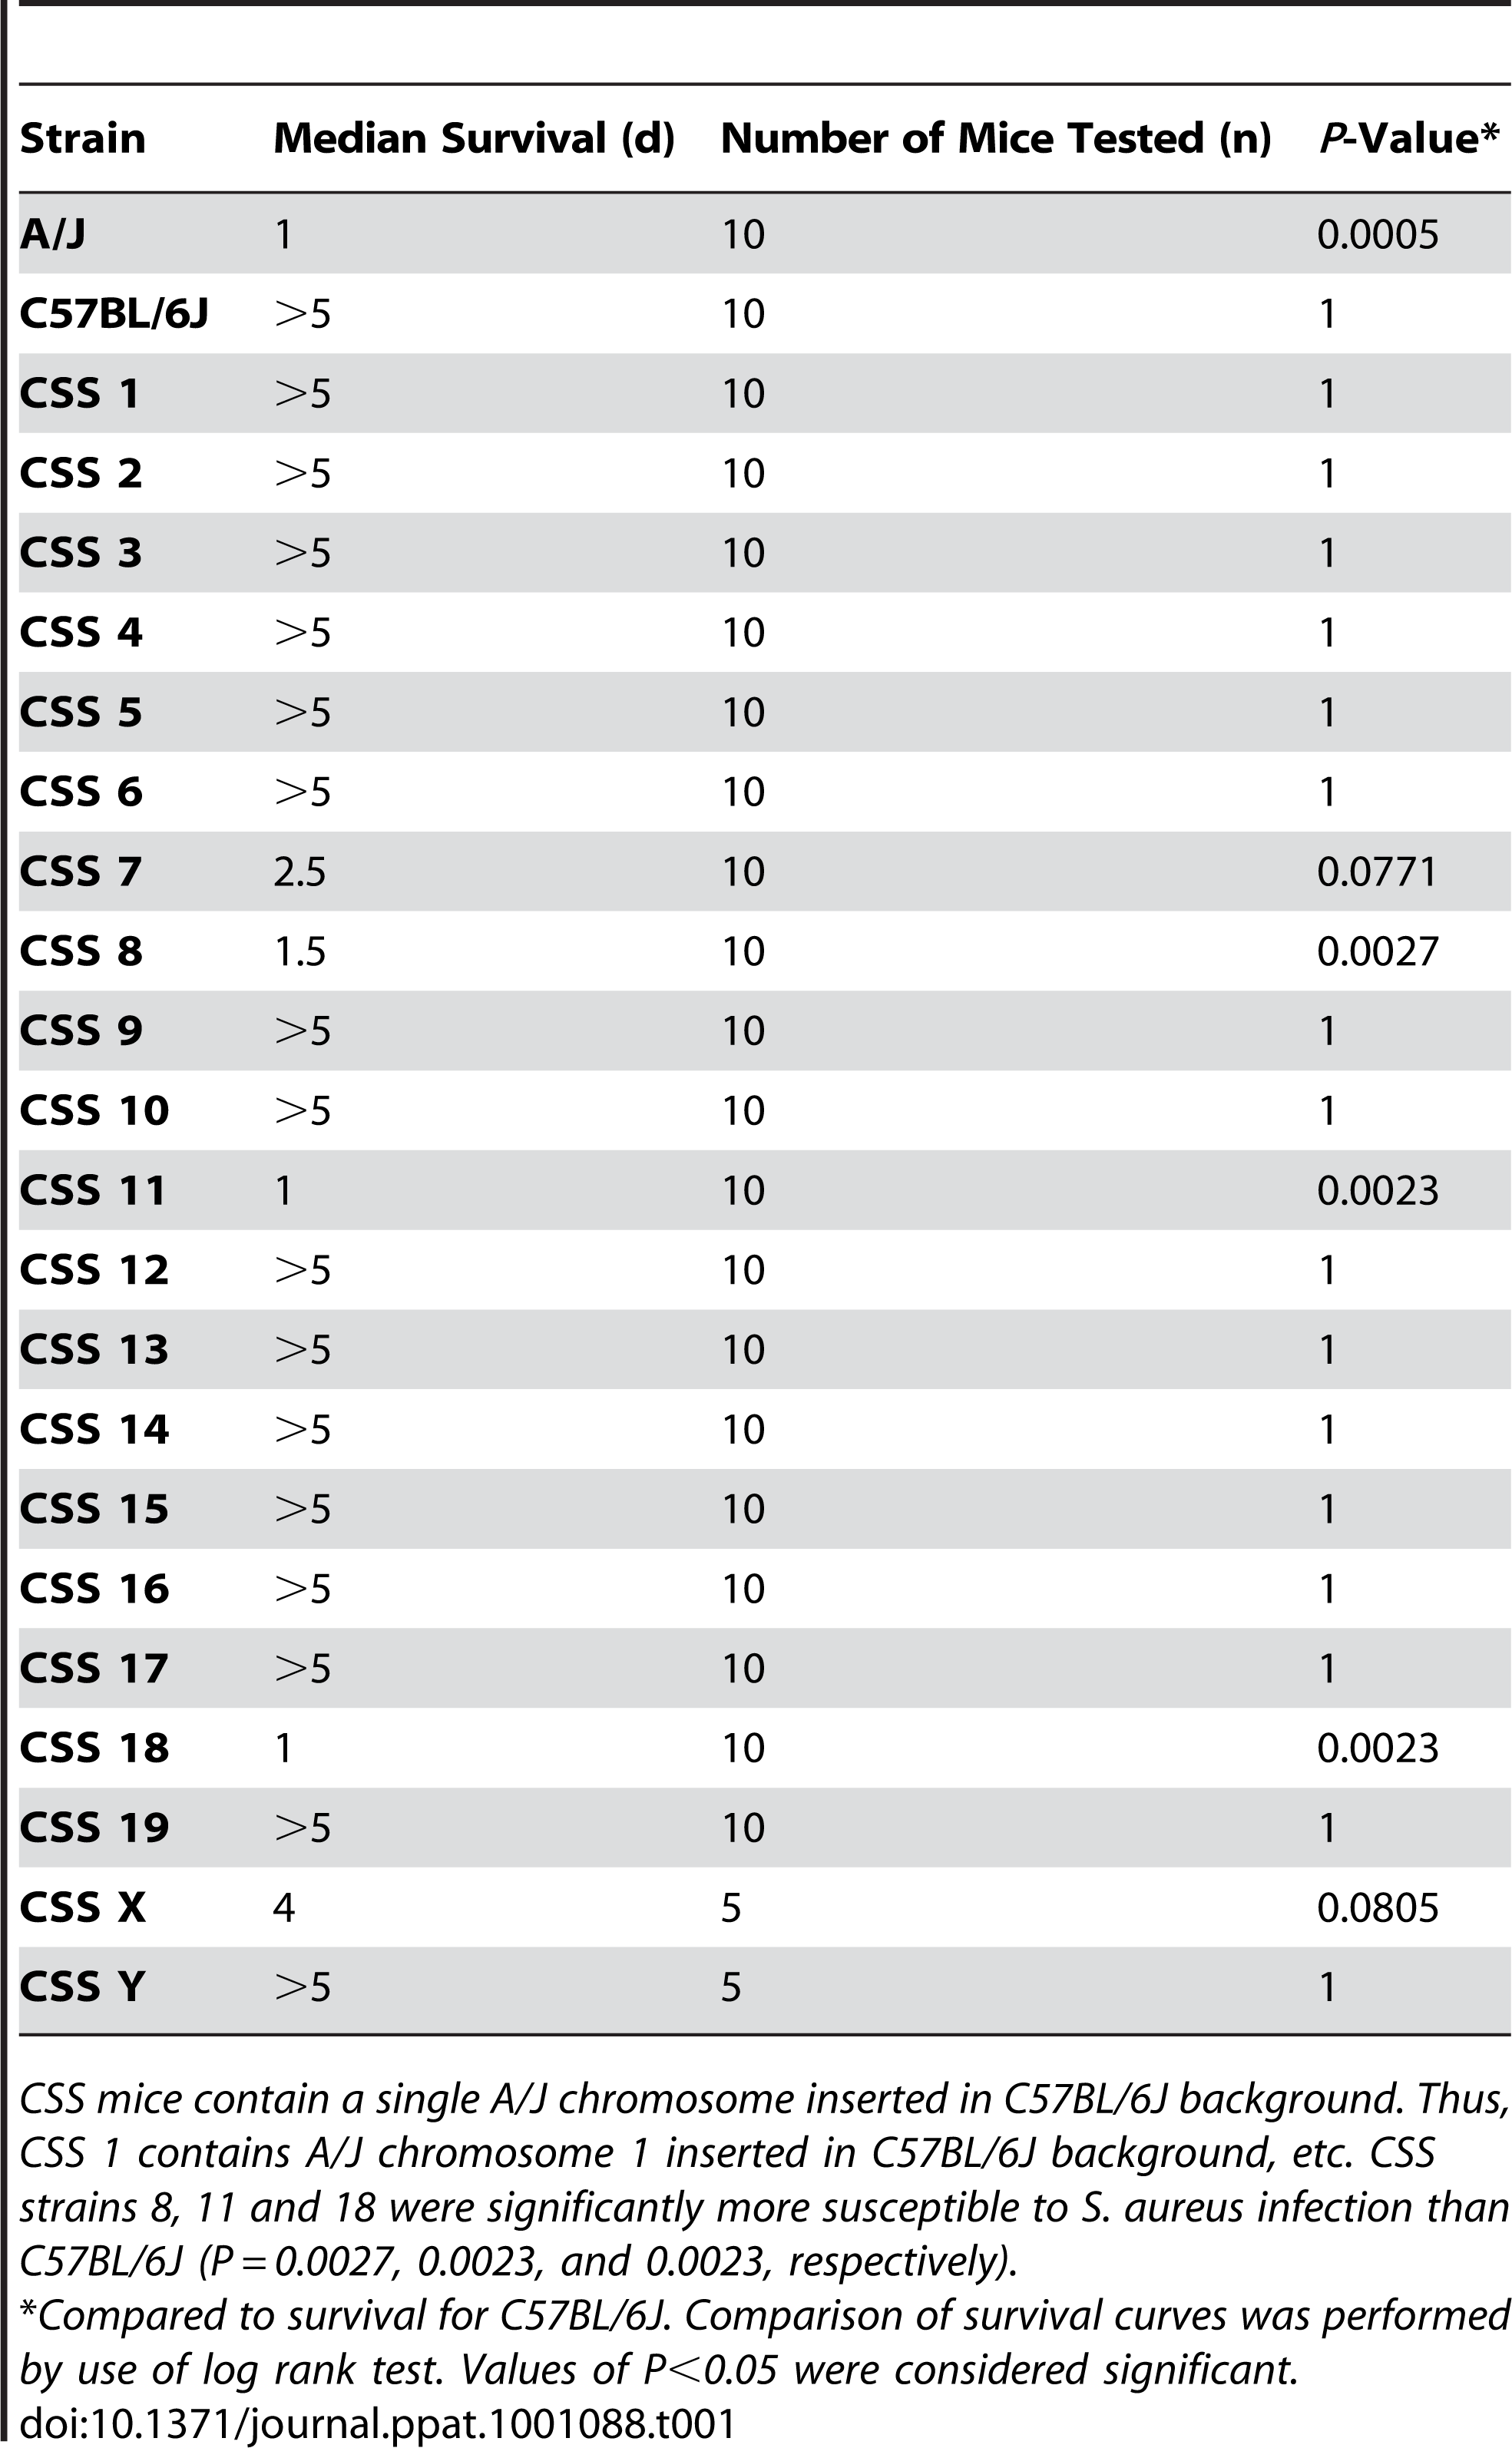 Median survival of C57BL/6J, A/J, and Chromosome substituted strain (CSS) mice after intraperitoneal injection with <i>S. aureus</i> (10<sup>7</sup> CFU/g).